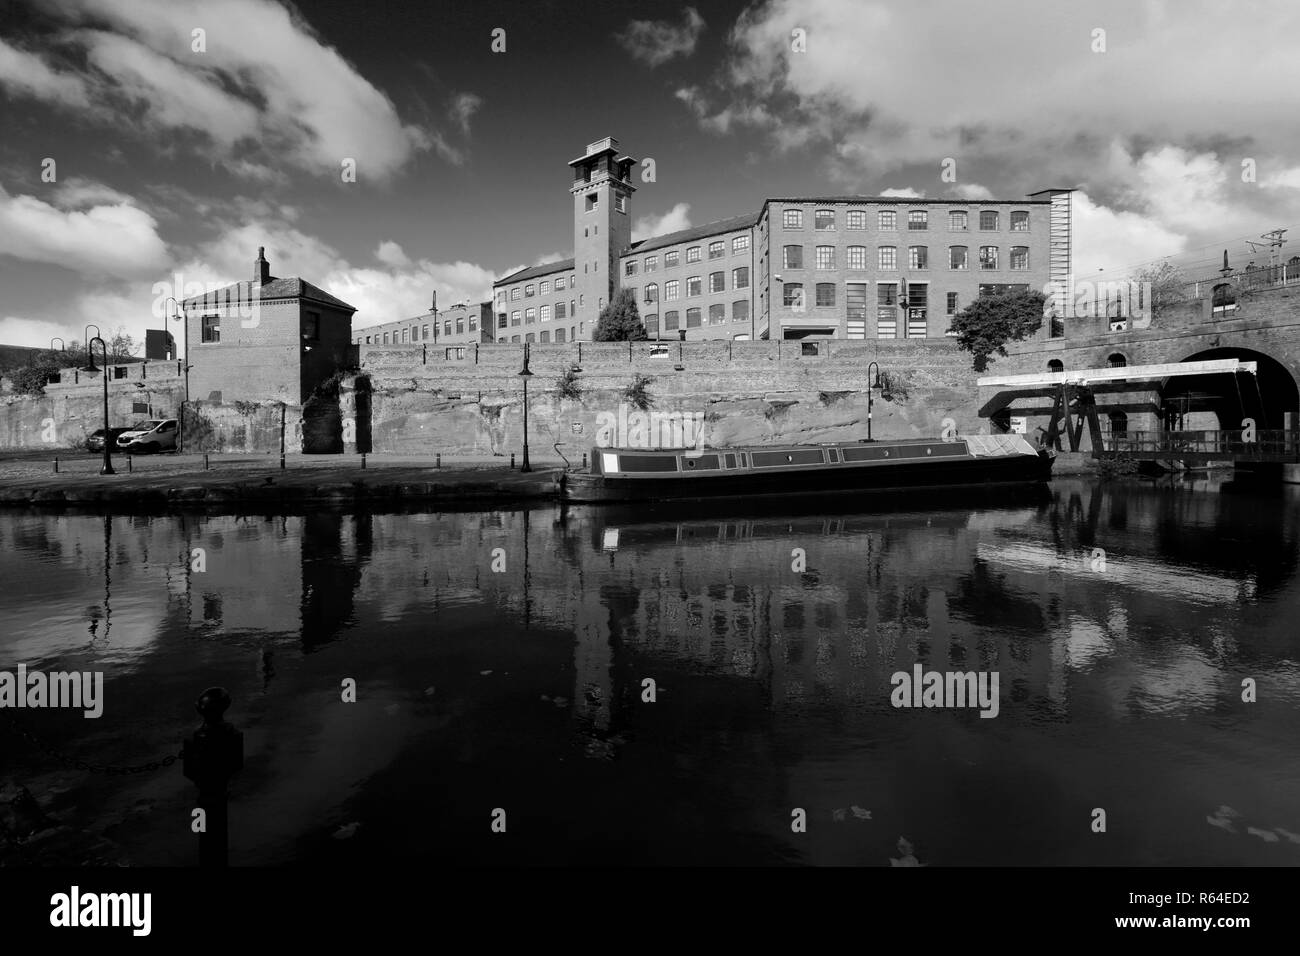 The Grocers Warehouse Ruins and Bridgewater Canal, Castlefield, Manchester, Lancashire, England, UK - Stock Image